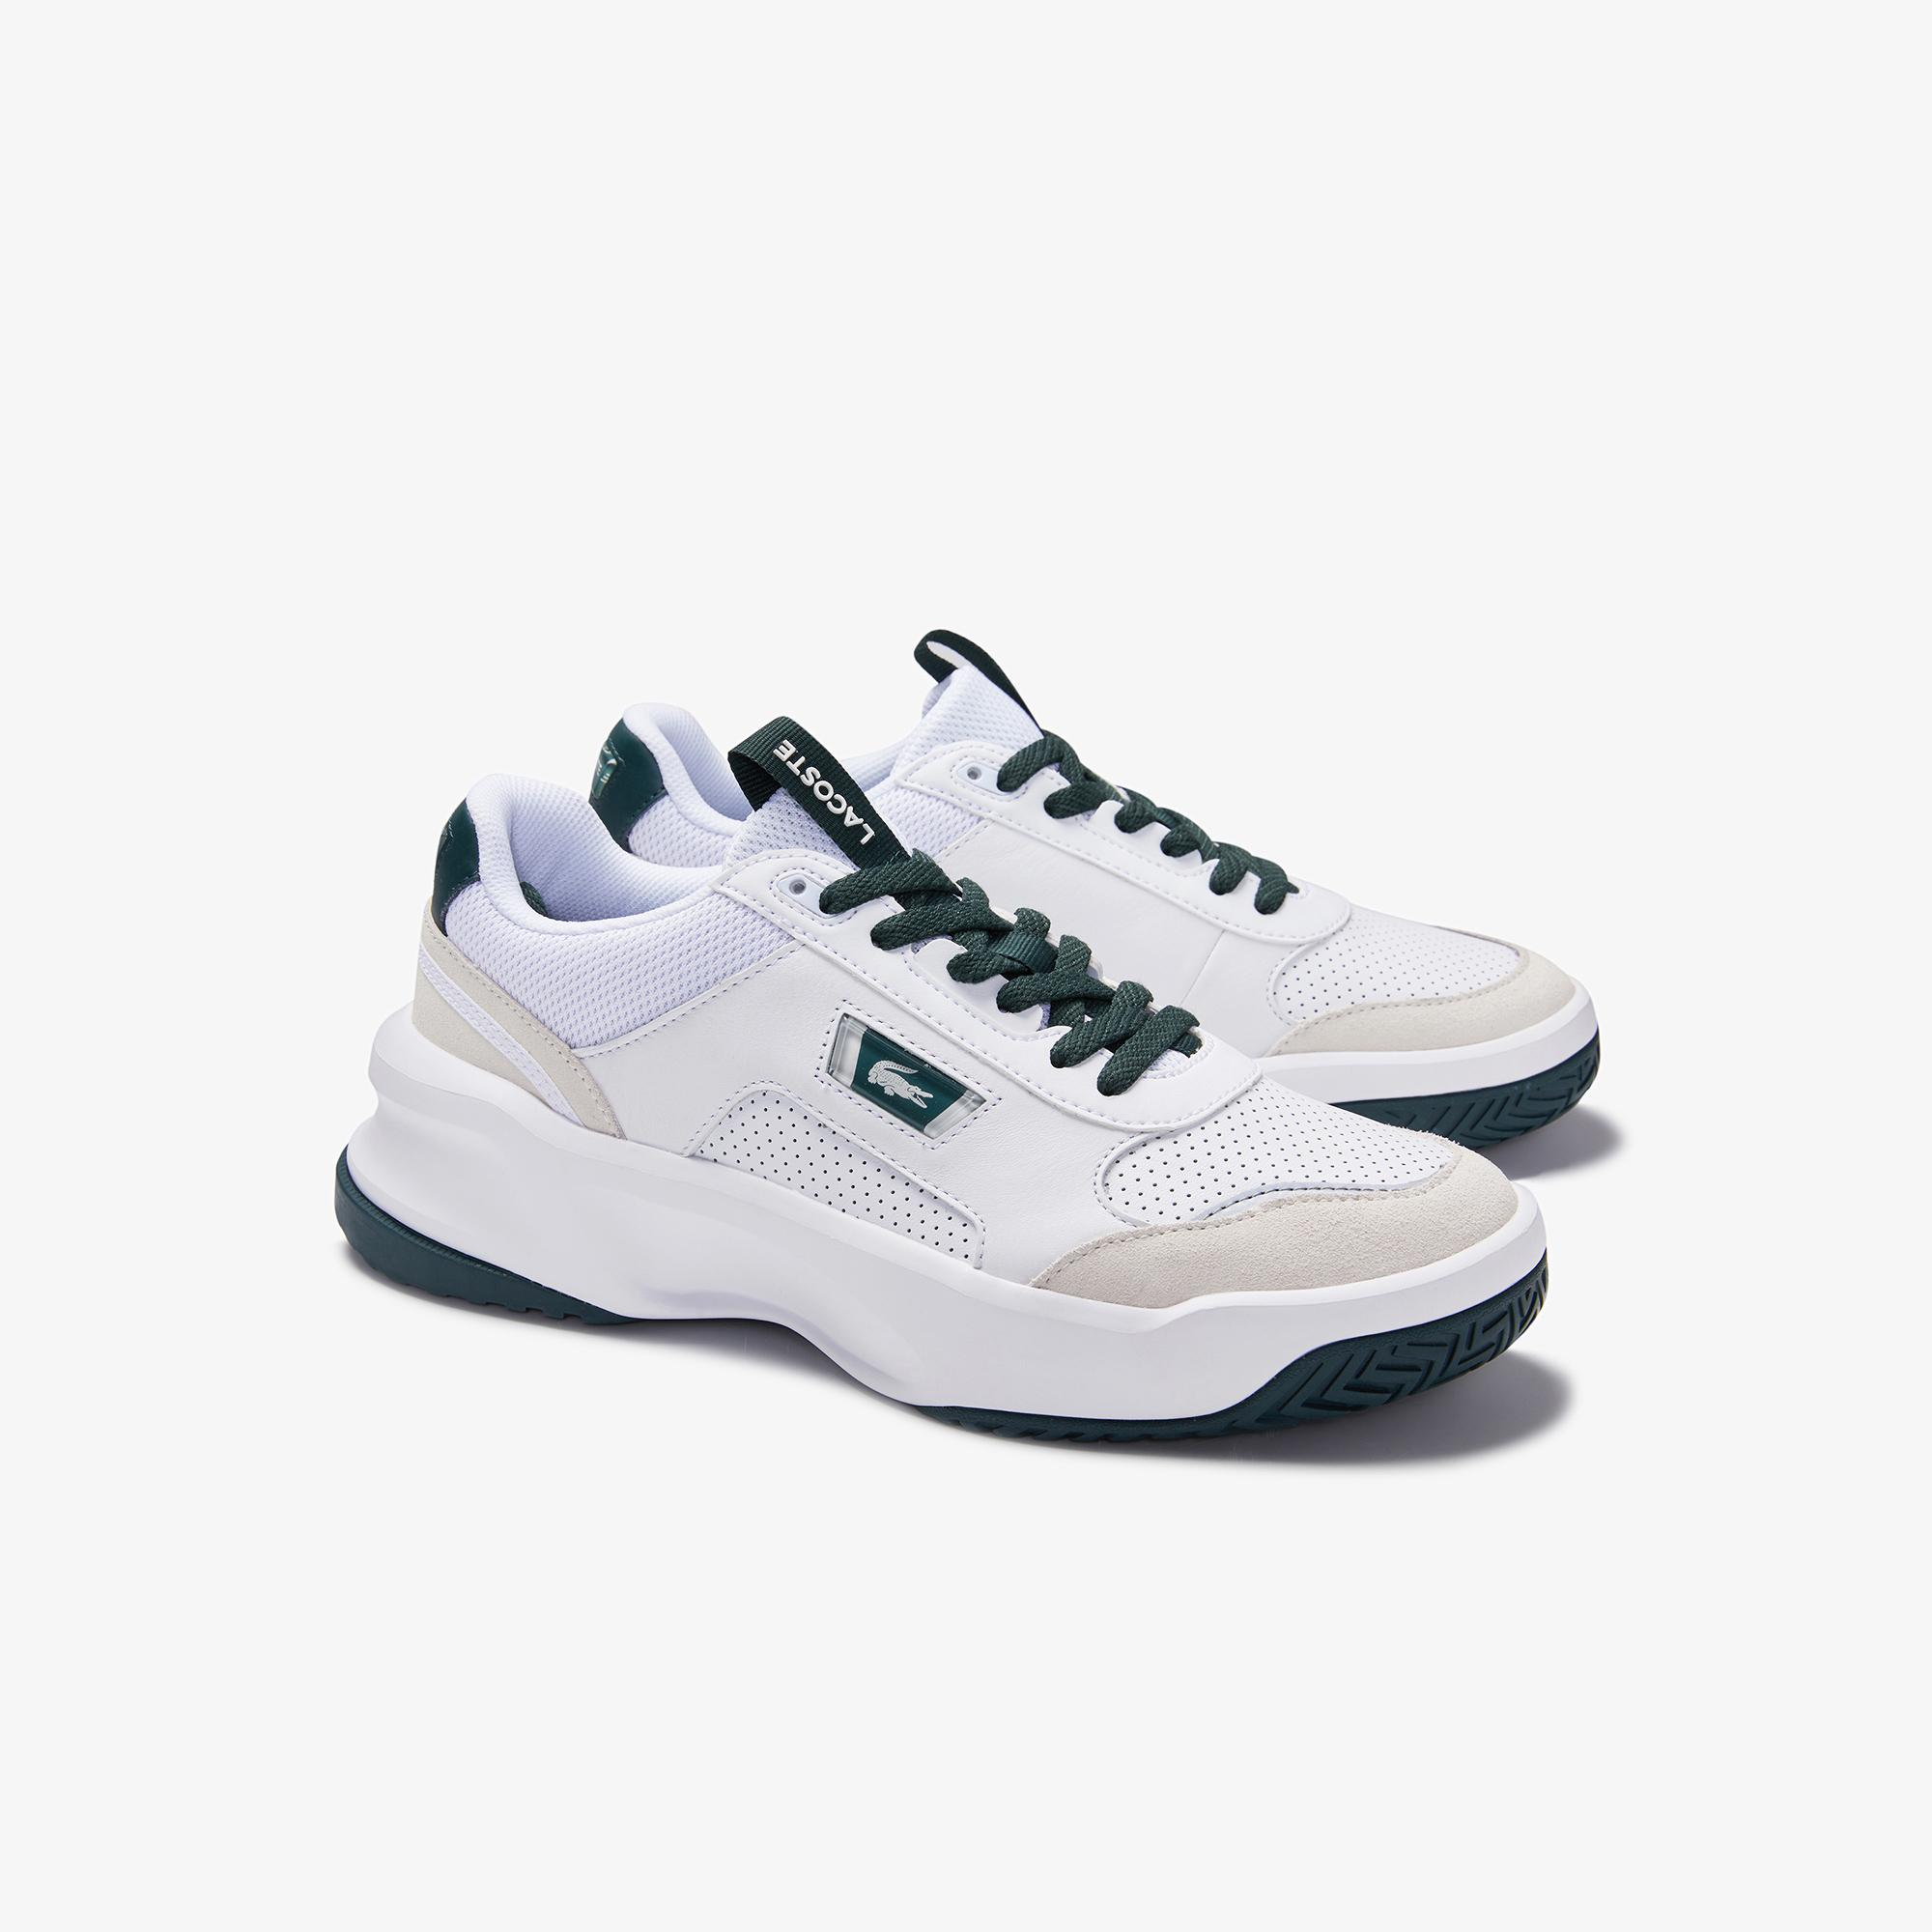 Lacoste Men's Ace Lıft 0120 2 SMA Sneakers